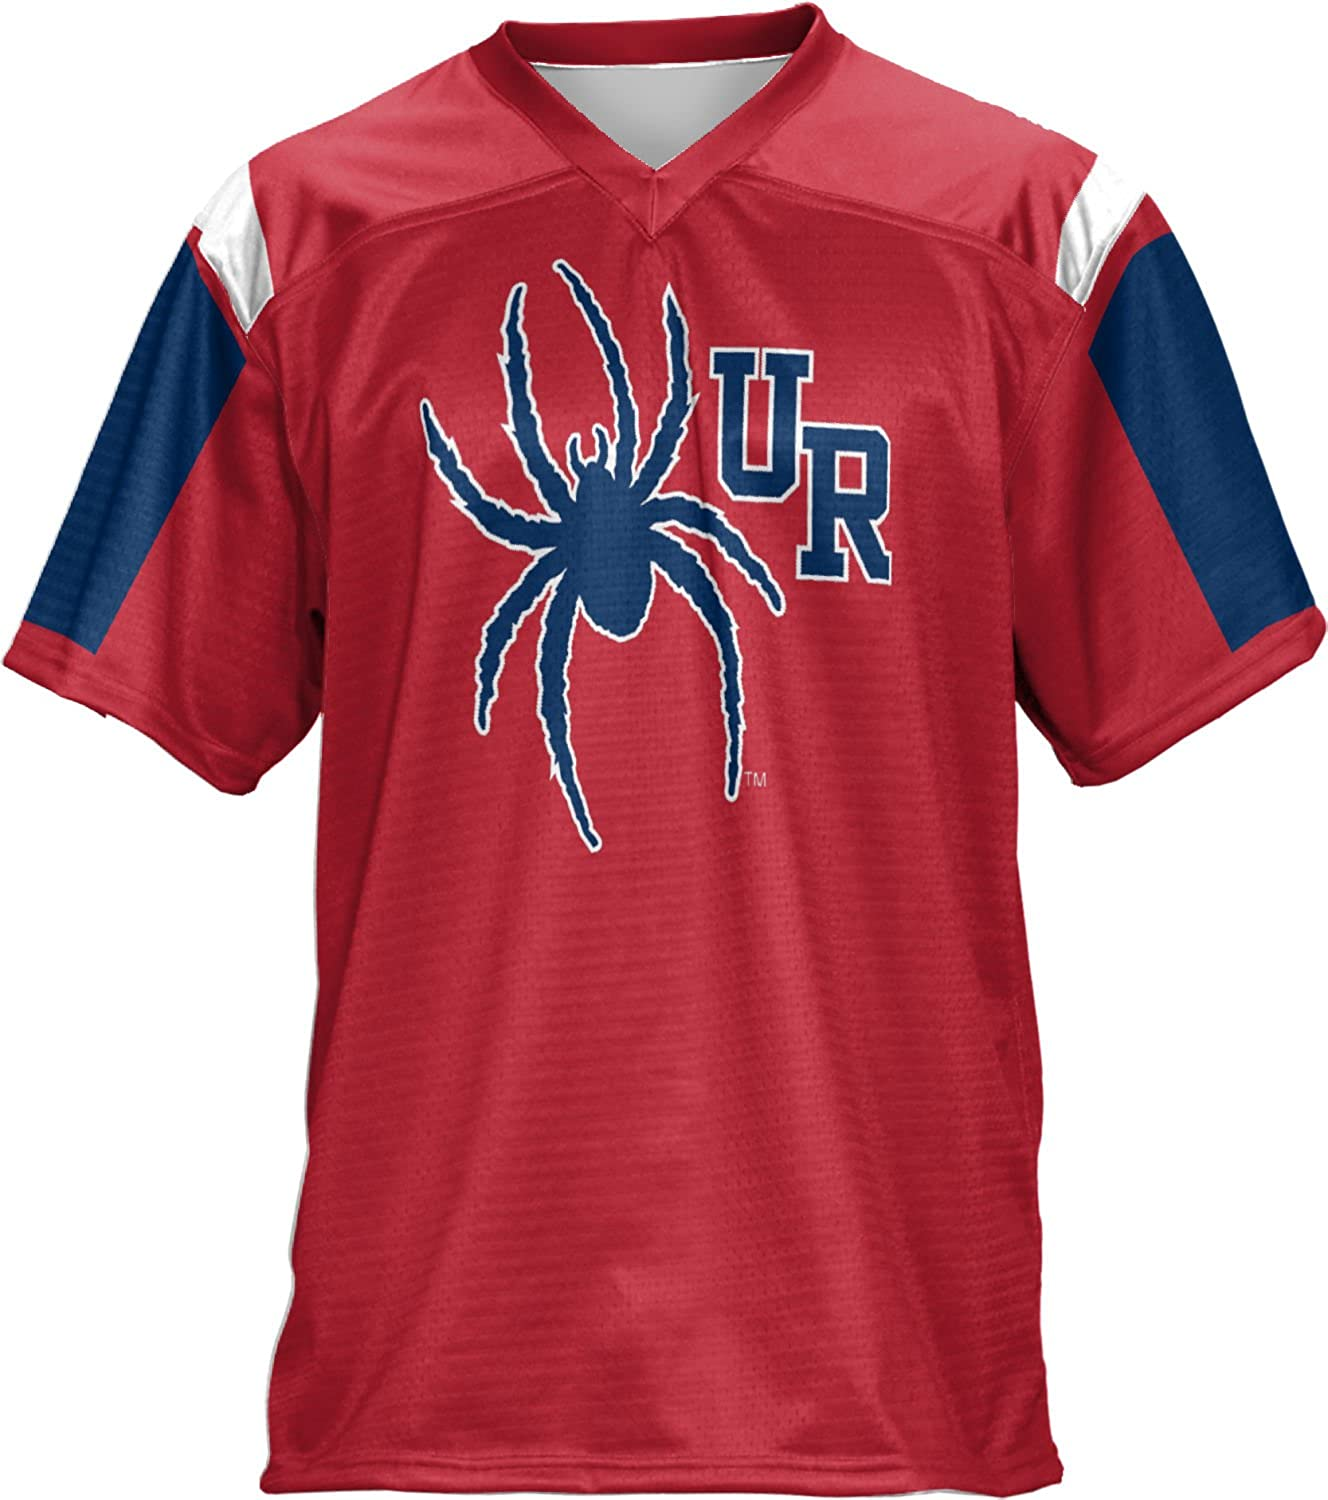 Special price for a limited time ProSphere University of Richmond Jersey Boys' Thunders Inventory cleanup selling sale Football